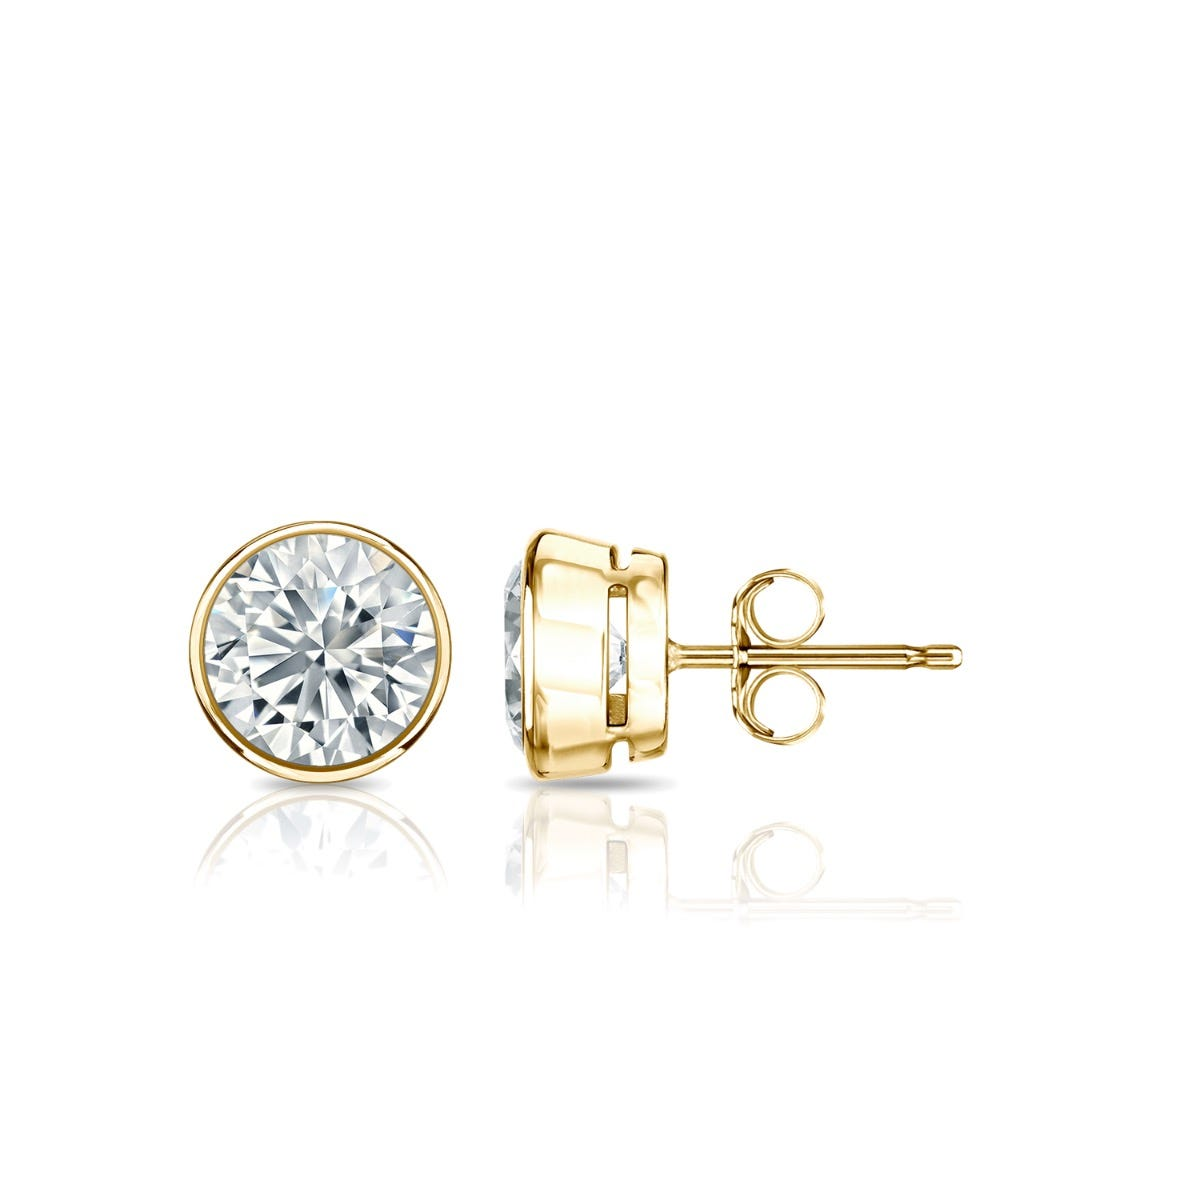 Diamond Round Bezel-Set 3/4ctw. Solitaire Stud (IJ-I2) Earrings in 10K Yellow Gold